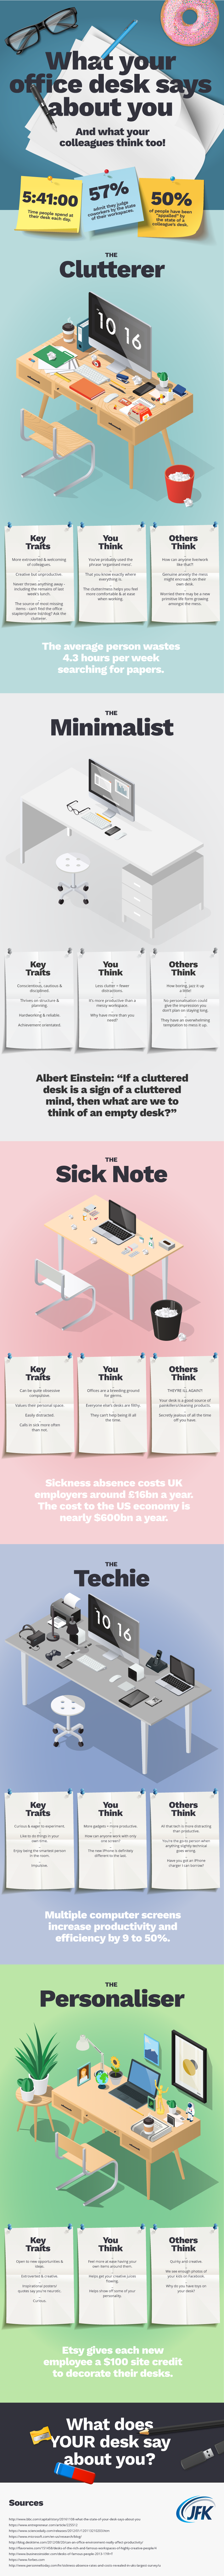 Your Office Desk Says A Lot About You - Infographic